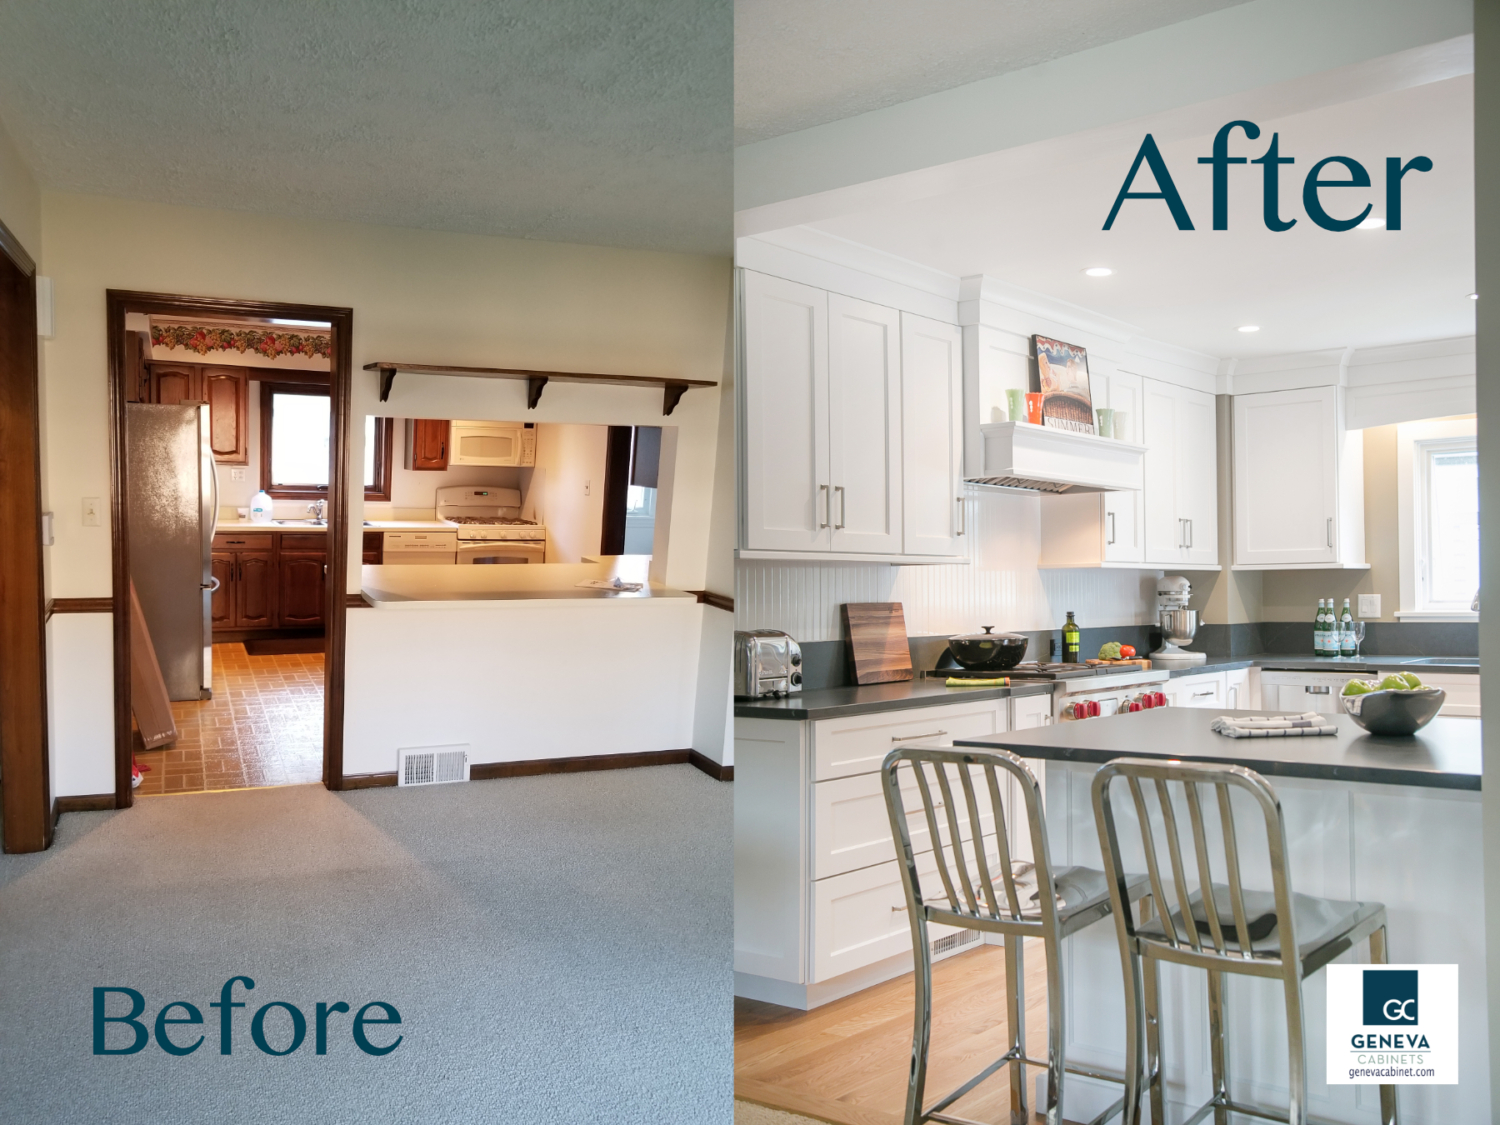 Kitchen remodel by Geneva Cabinet Company before and after view